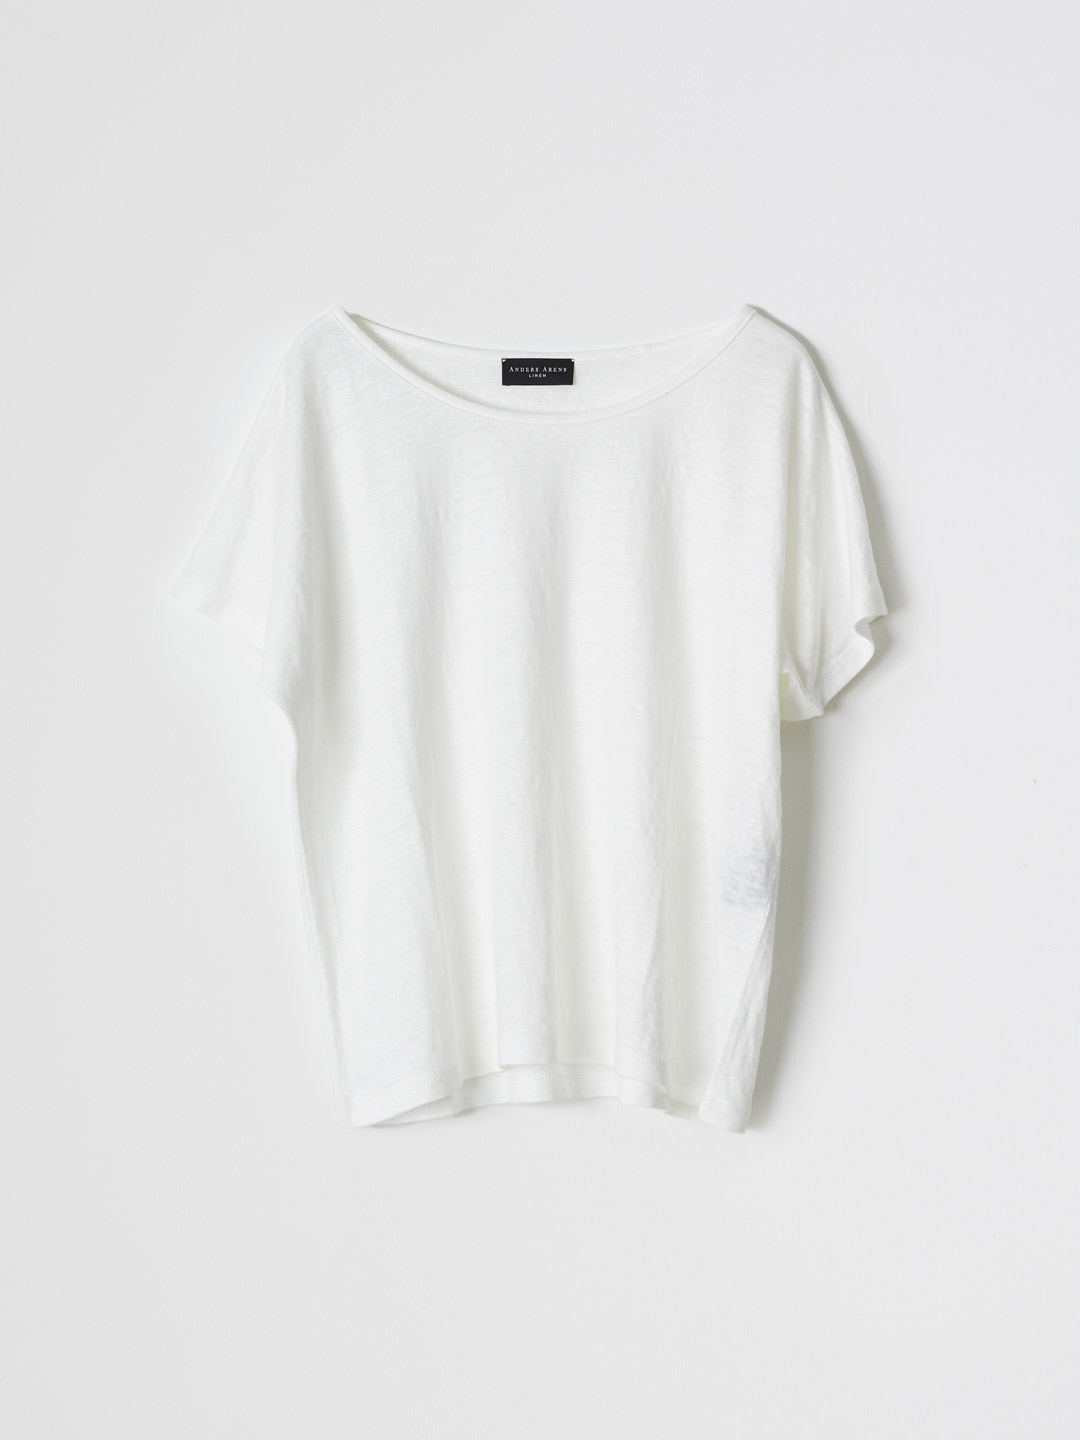 MADRAGUE Short Sleeve Boat Neck T-shirt - White